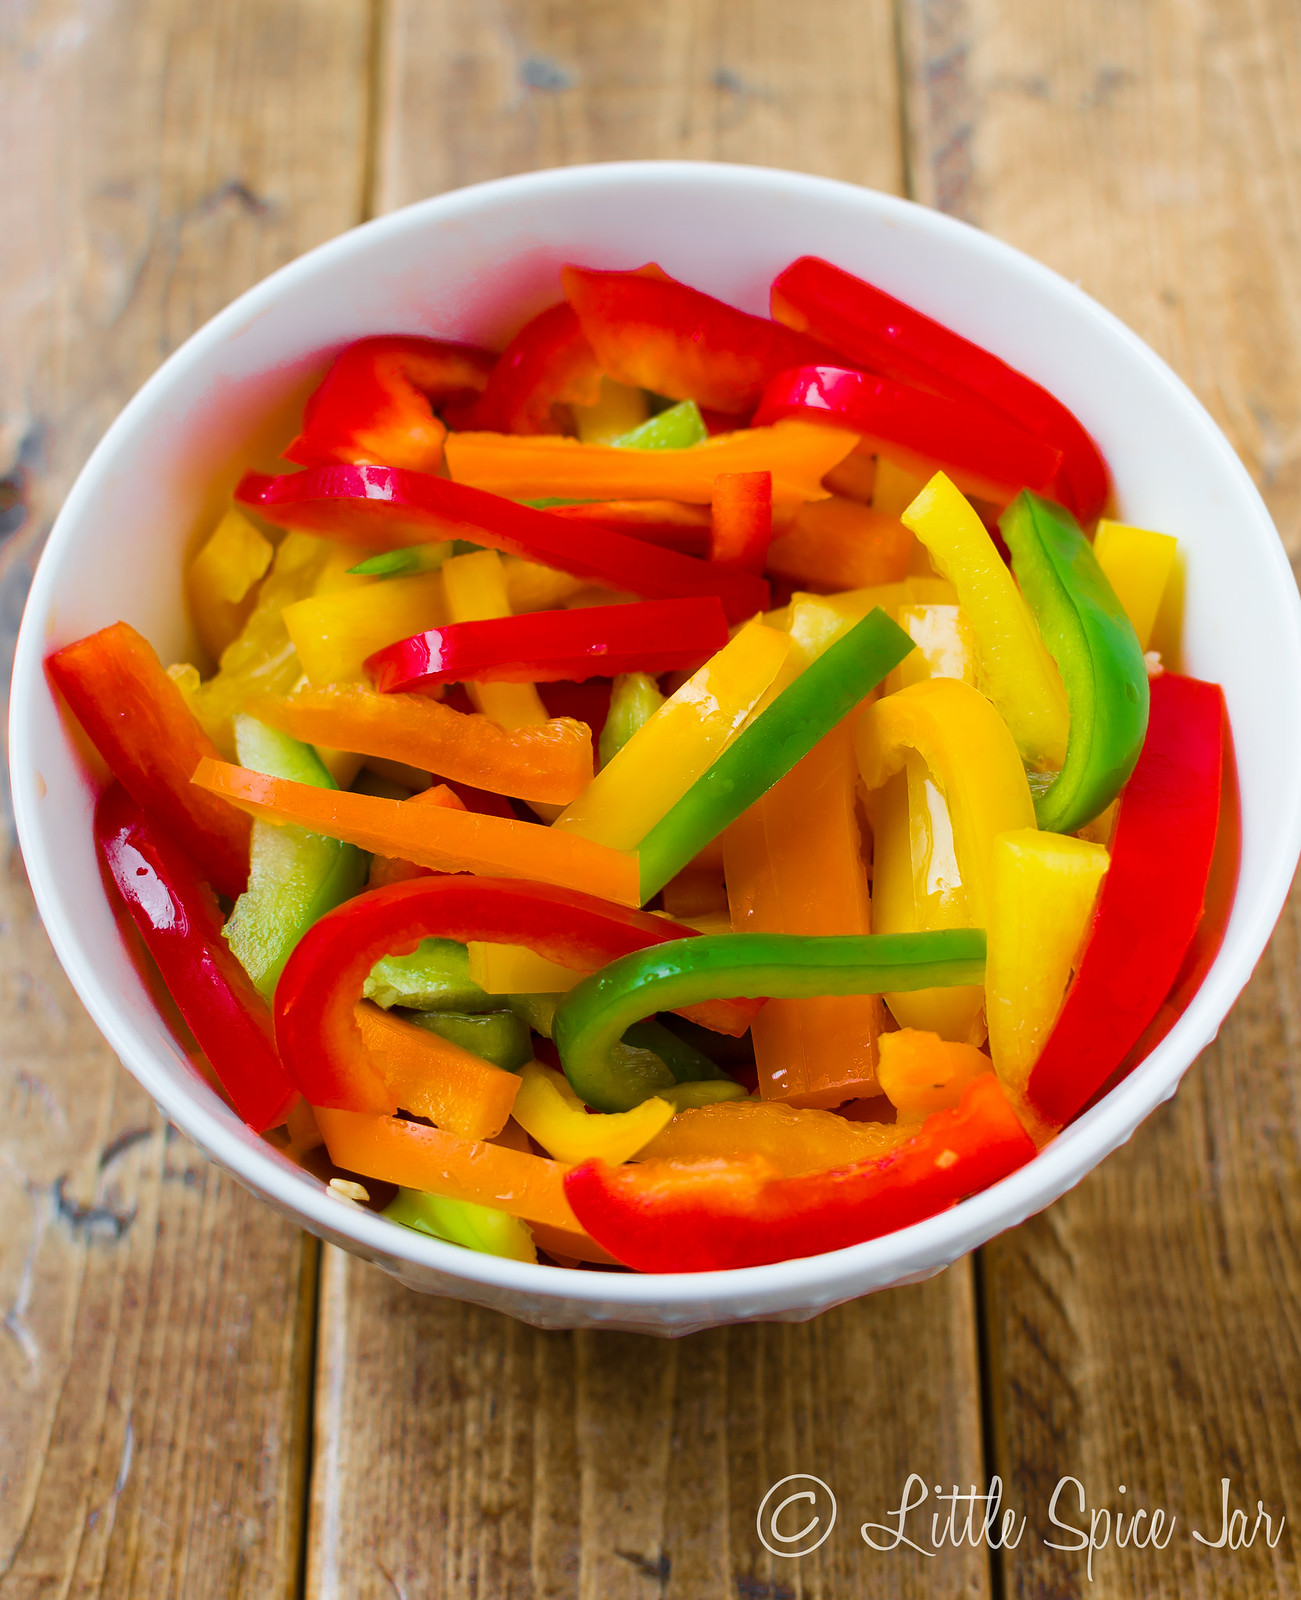 multi colored bell peppers in strips in white bowl on wood surface